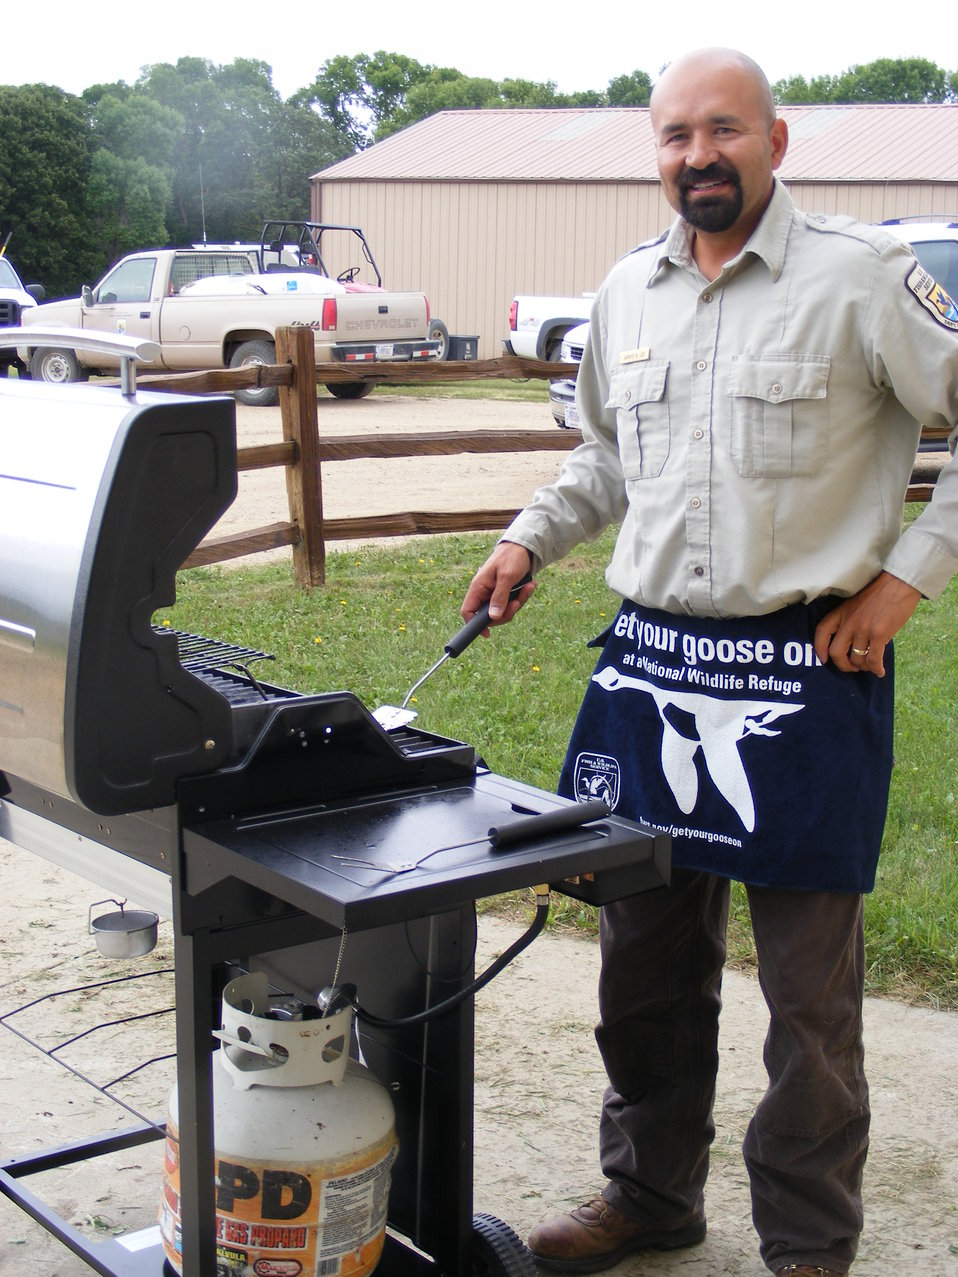 Grill Master - Get Your Goose On! Style